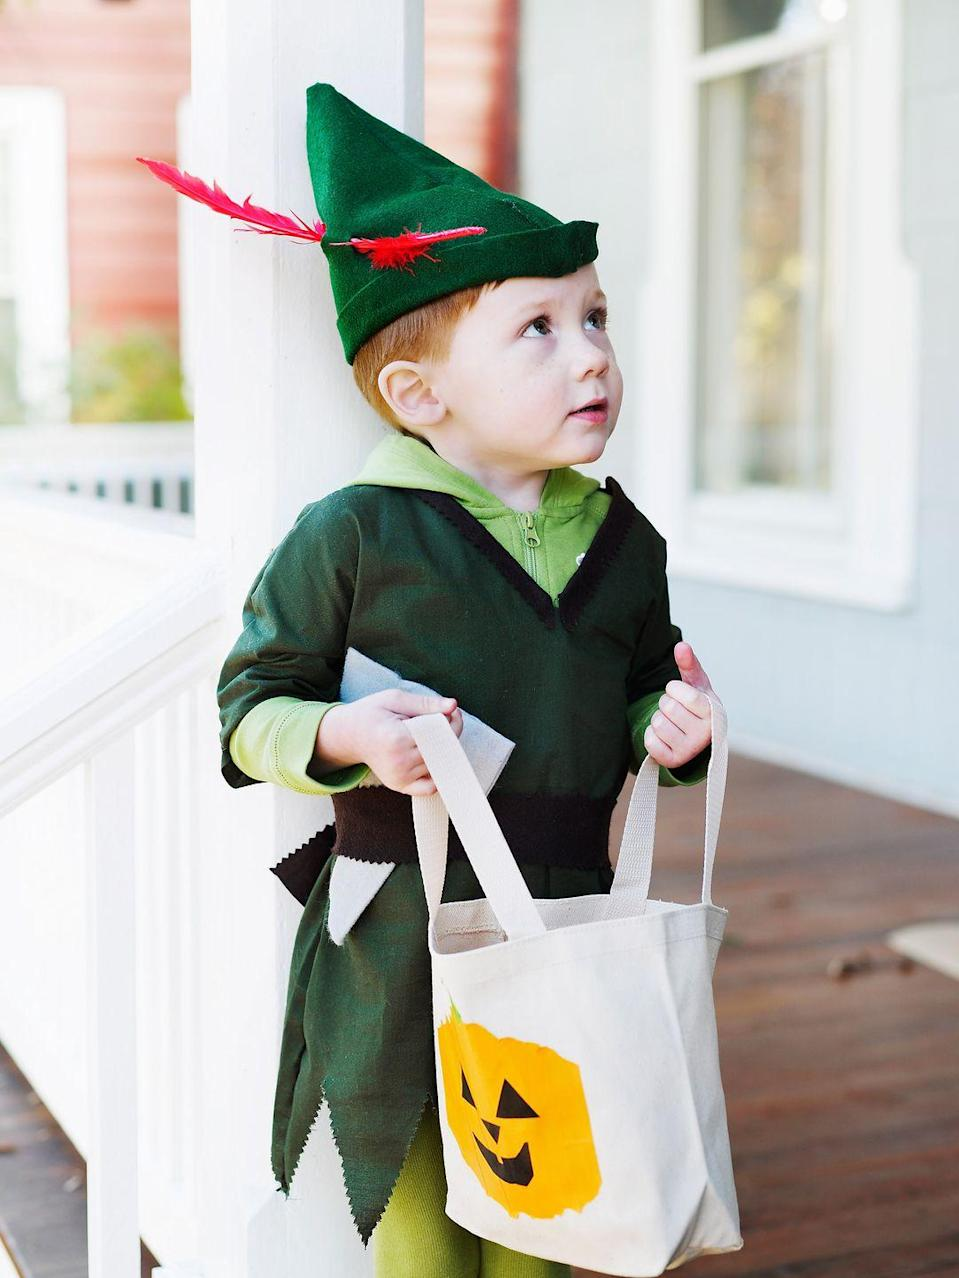 """<p>Even if you're not handy with a needle and thread, a large green t-shirt can be cleverly trimmed into a <em>Peter Pan</em>-like tunic. Fashion a hat from felt (<a href=""""https://tikkido.com/blog/DIY-peter-pan-robin-hood-hat-tutorial"""" rel=""""nofollow noopener"""" target=""""_blank"""" data-ylk=""""slk:here's a helpful tutorial"""" class=""""link rapid-noclick-resp"""">here's a helpful tutorial</a>), and you're done! Bonus: This same costume works for Robin Hood. </p>"""